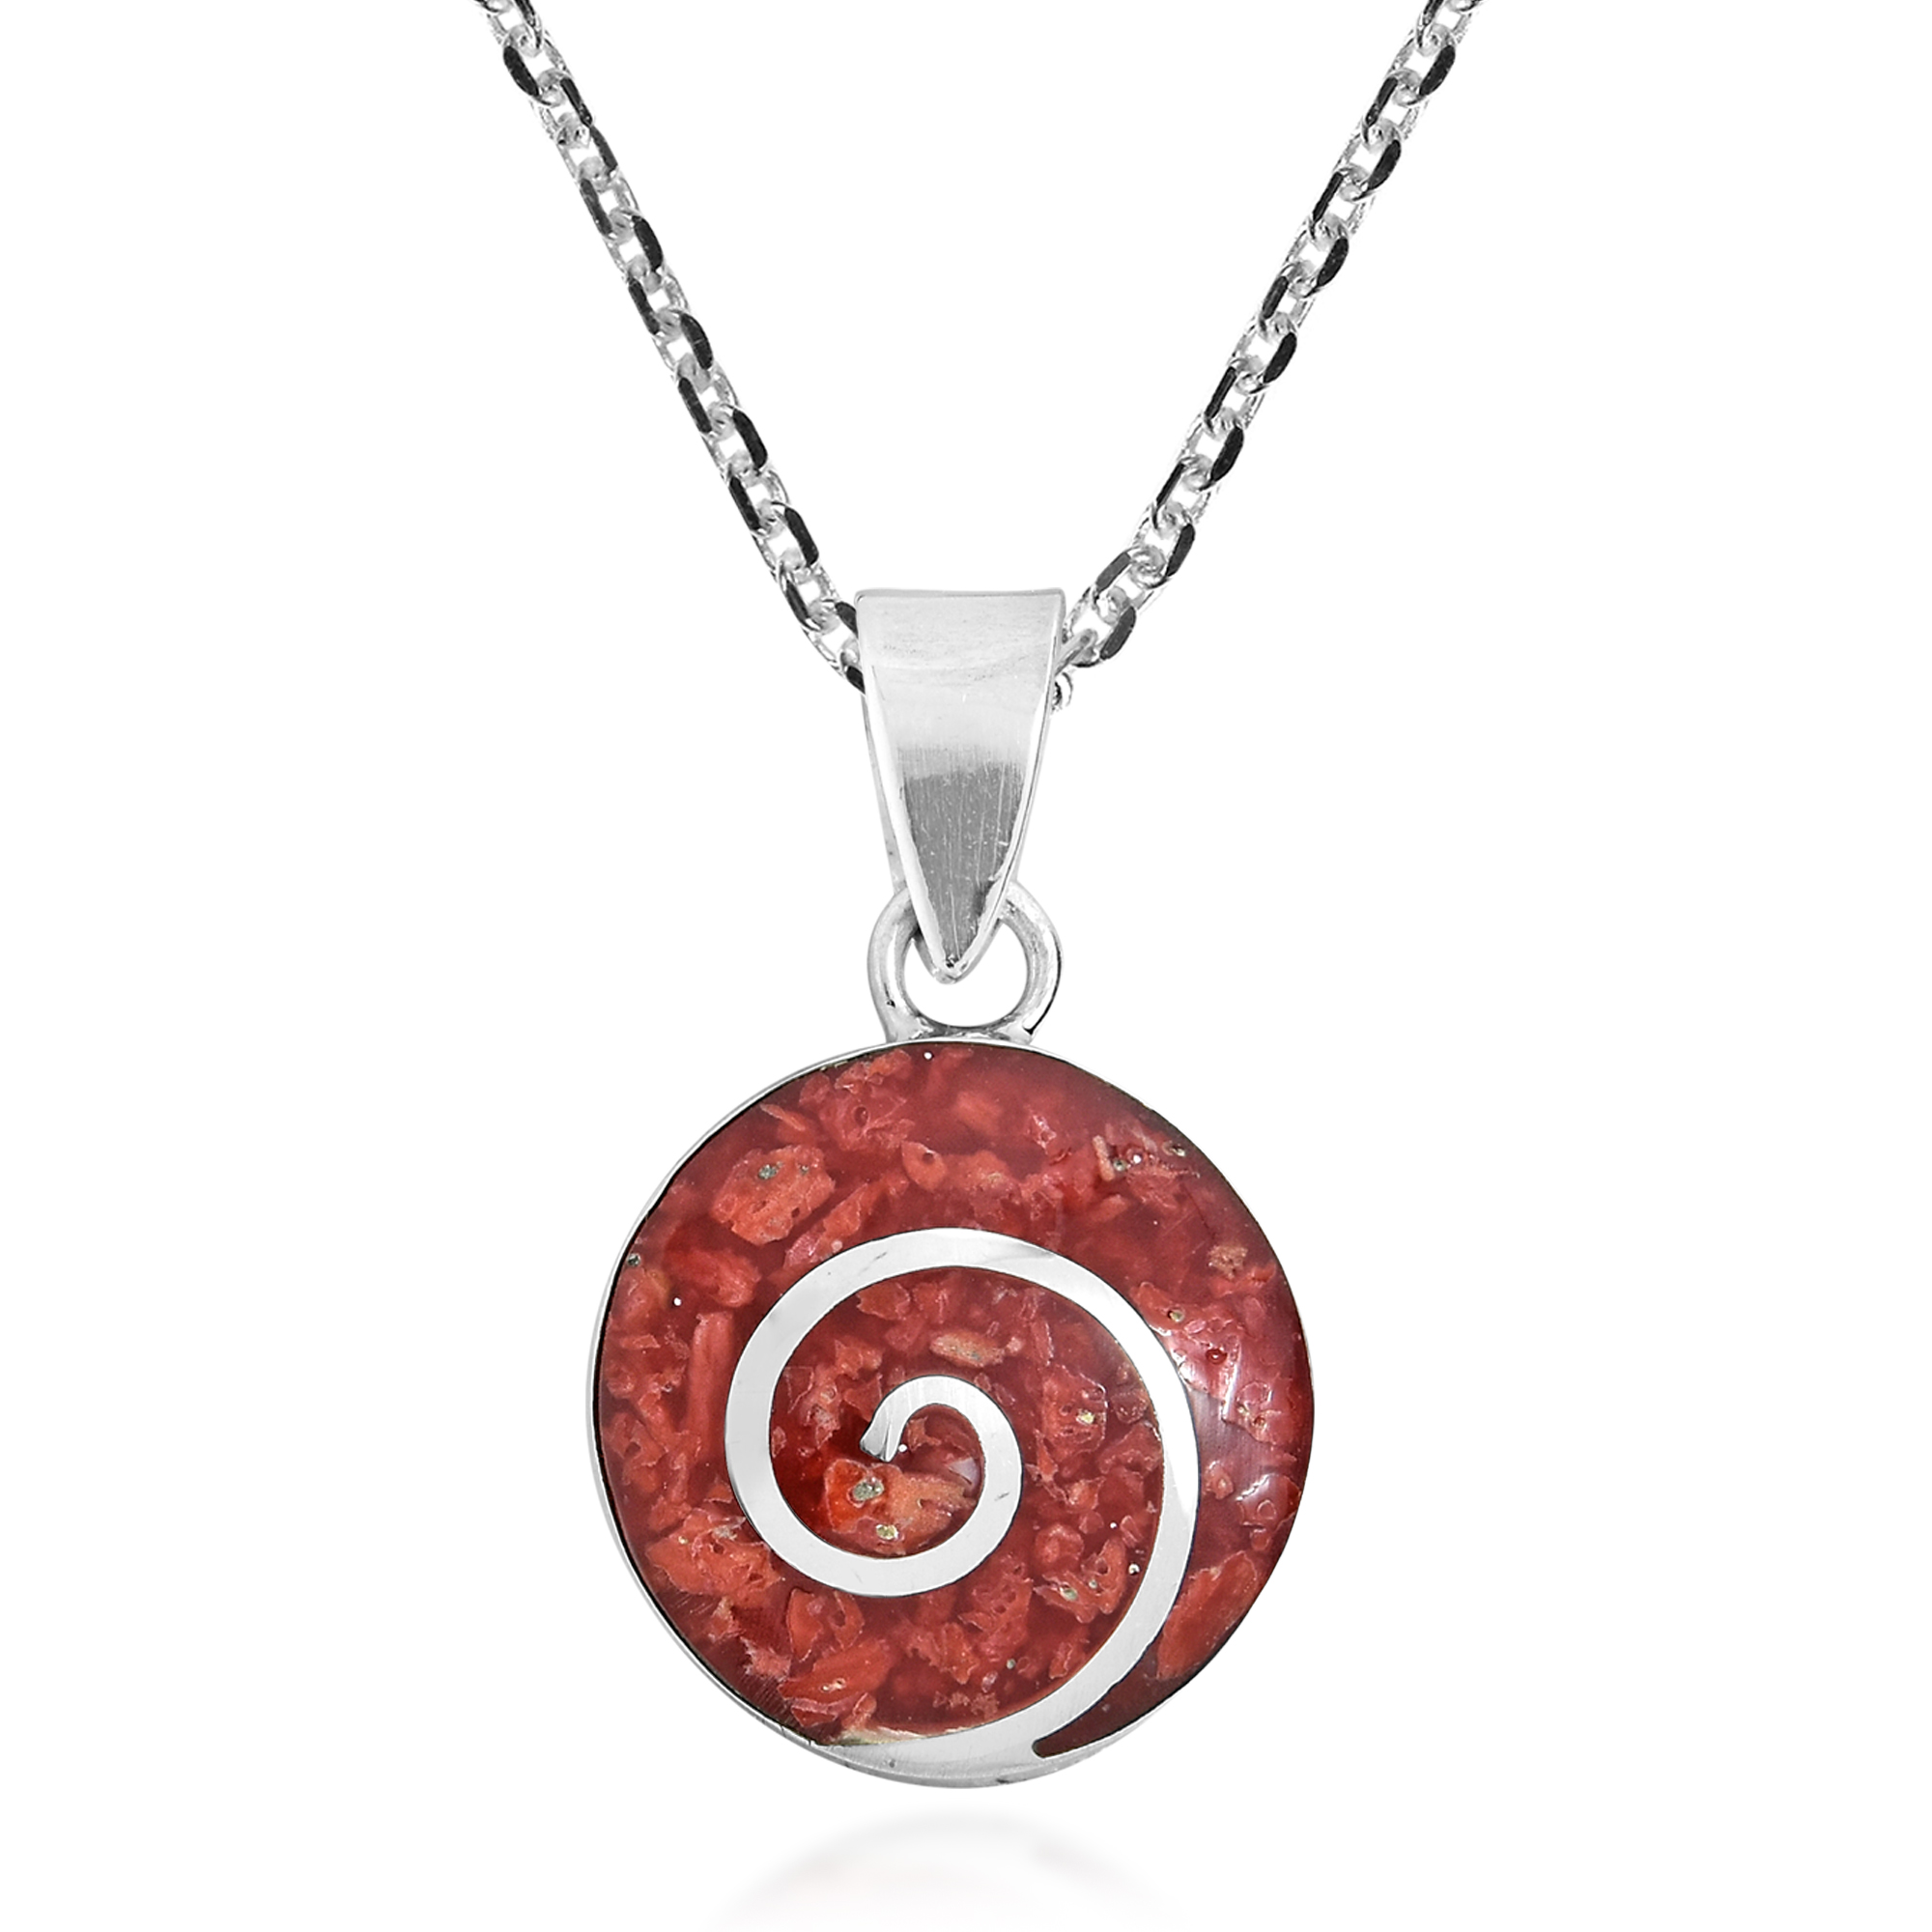 crystalspiral crystal spiral pendant necklace polished